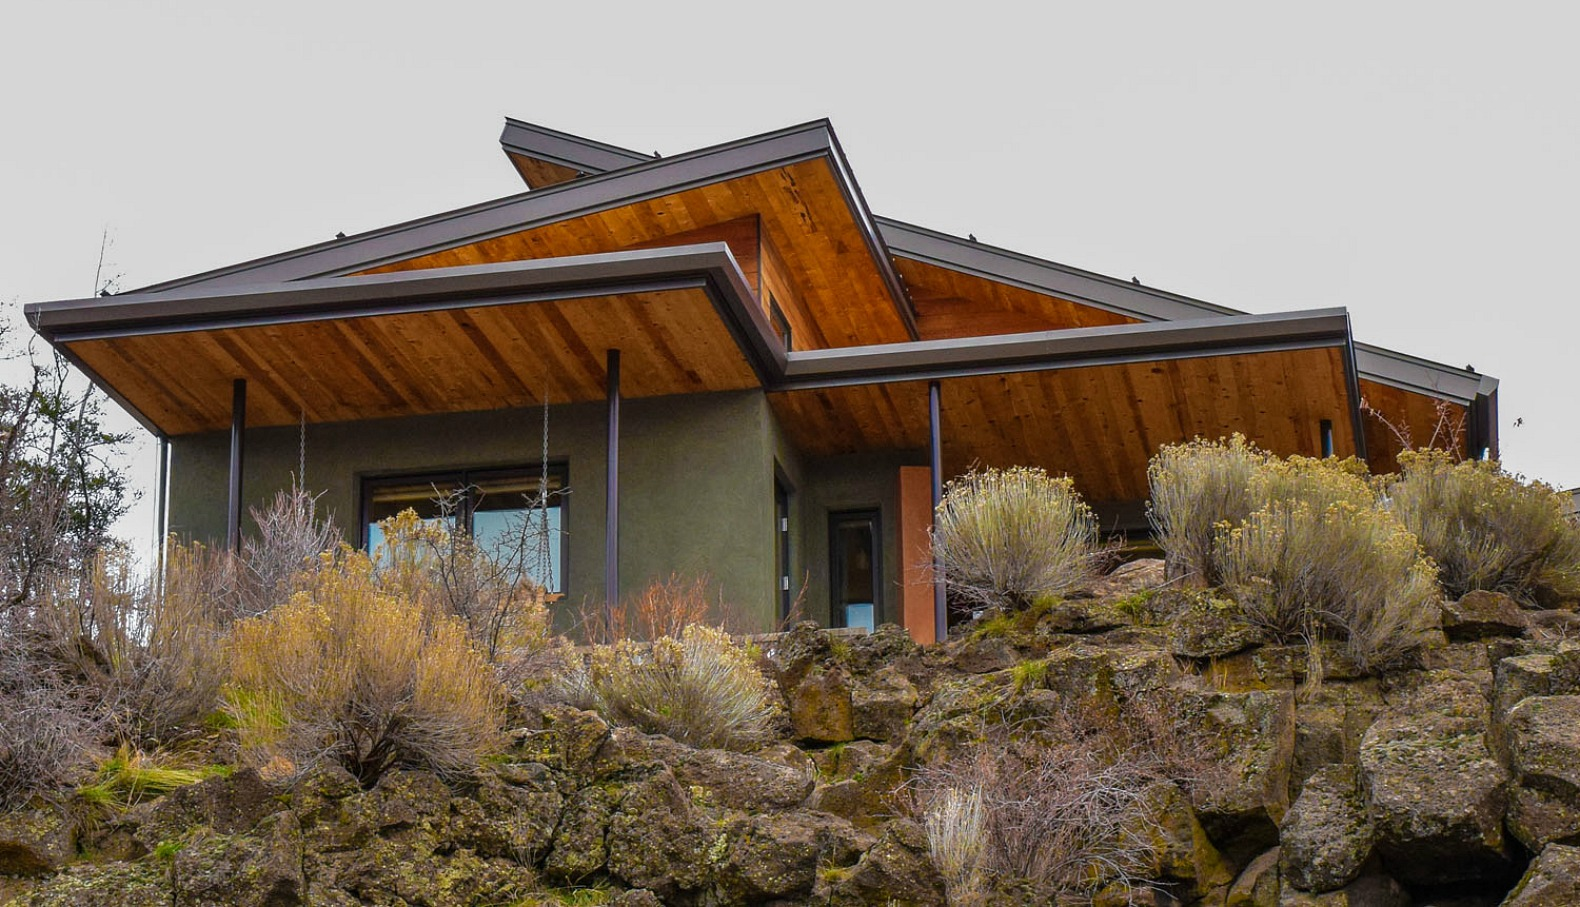 Best Kitchen Gallery: Oregon Couple Spends Years Building Their Zero 'extreme Green of Efficient Desert Home Designs on rachelxblog.com